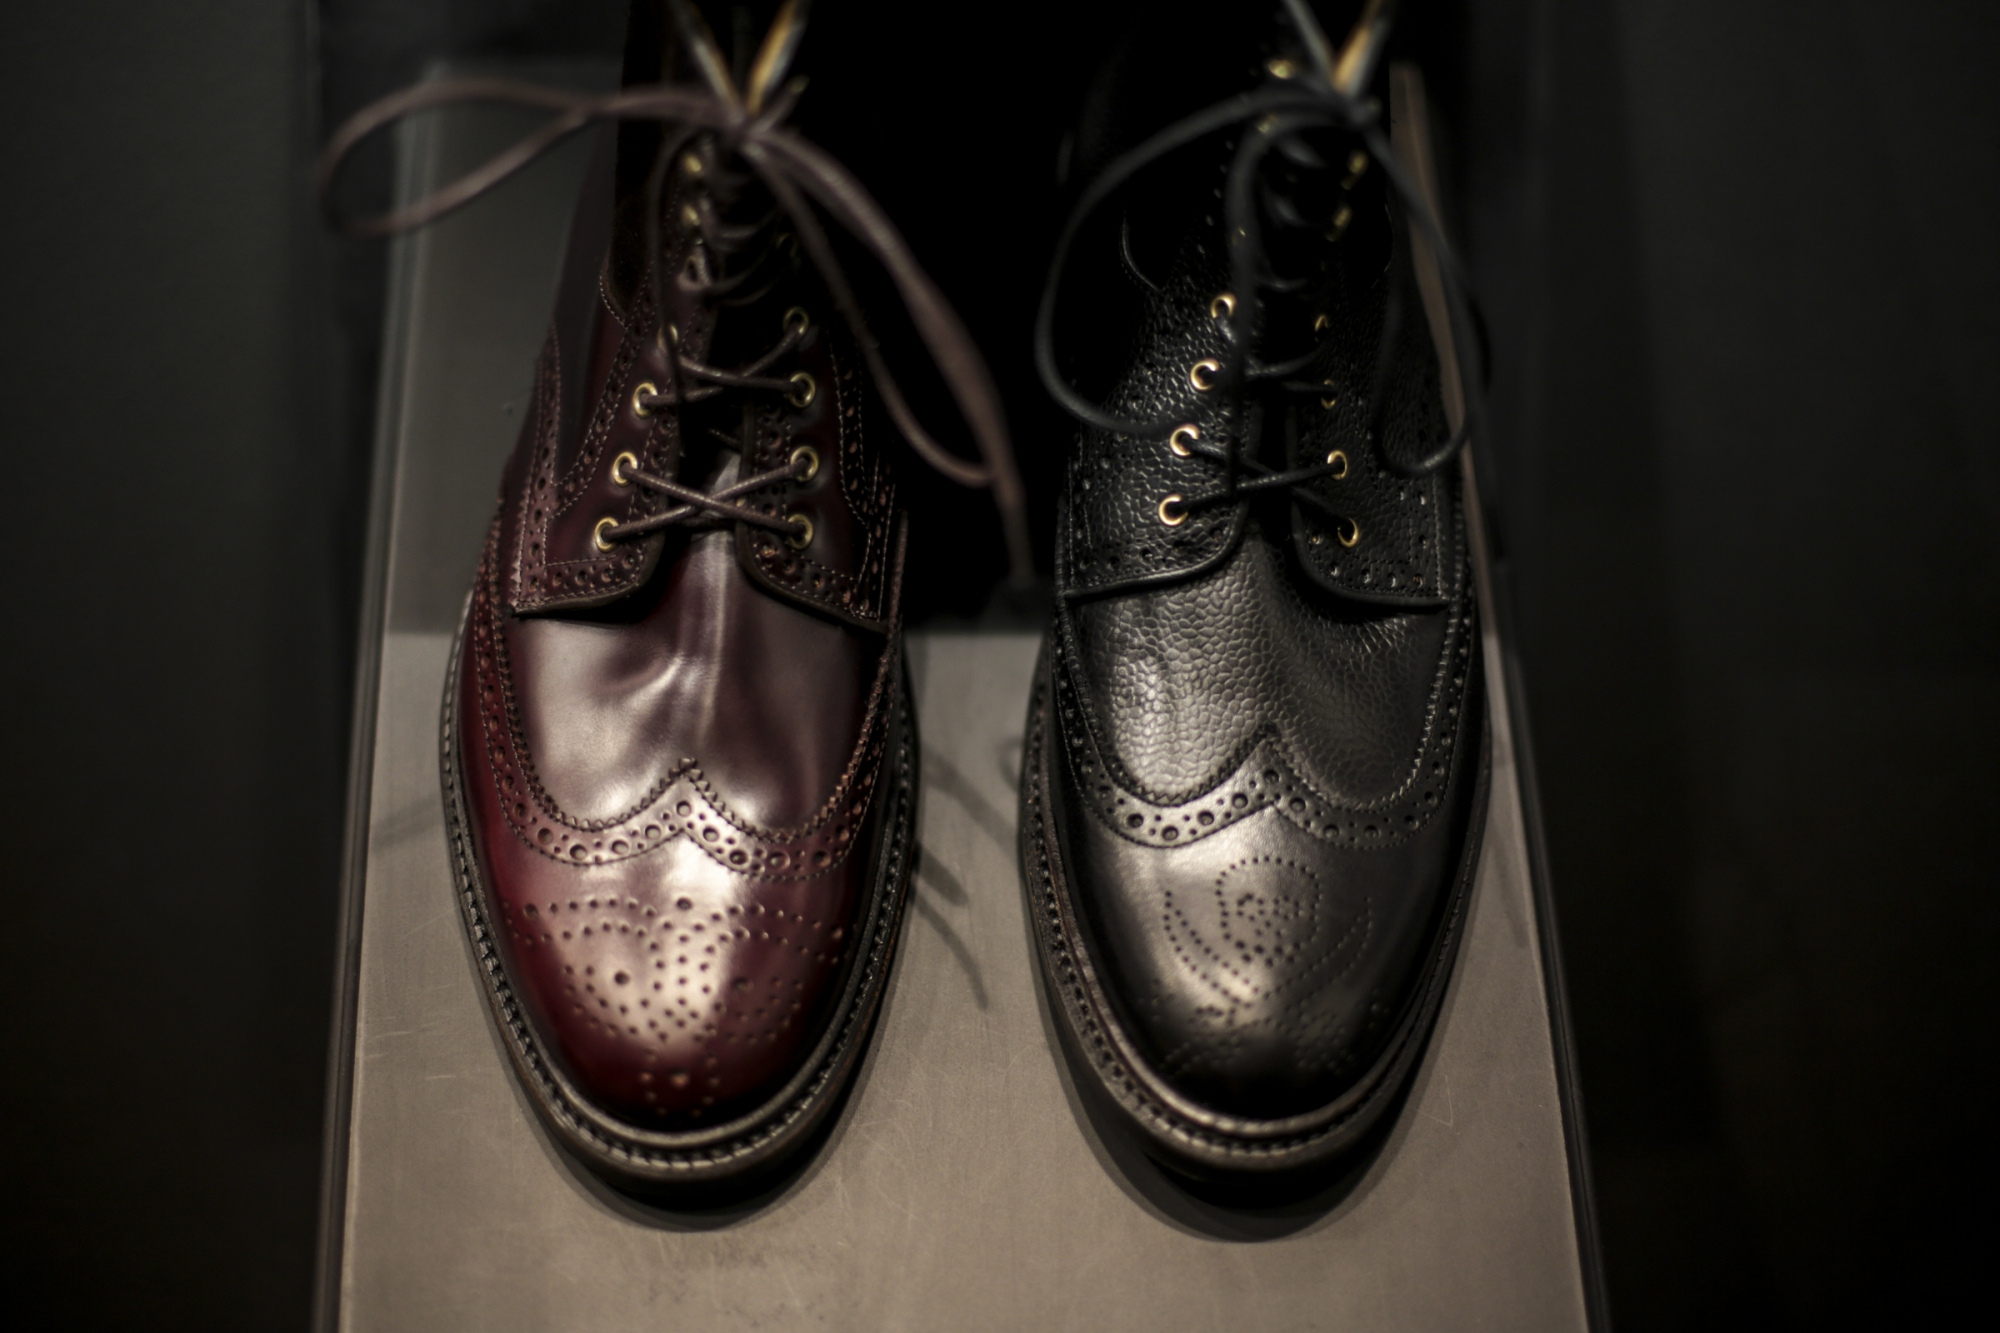 Bow-Tie at Pitti 89 Goodyear construction and luxurious details